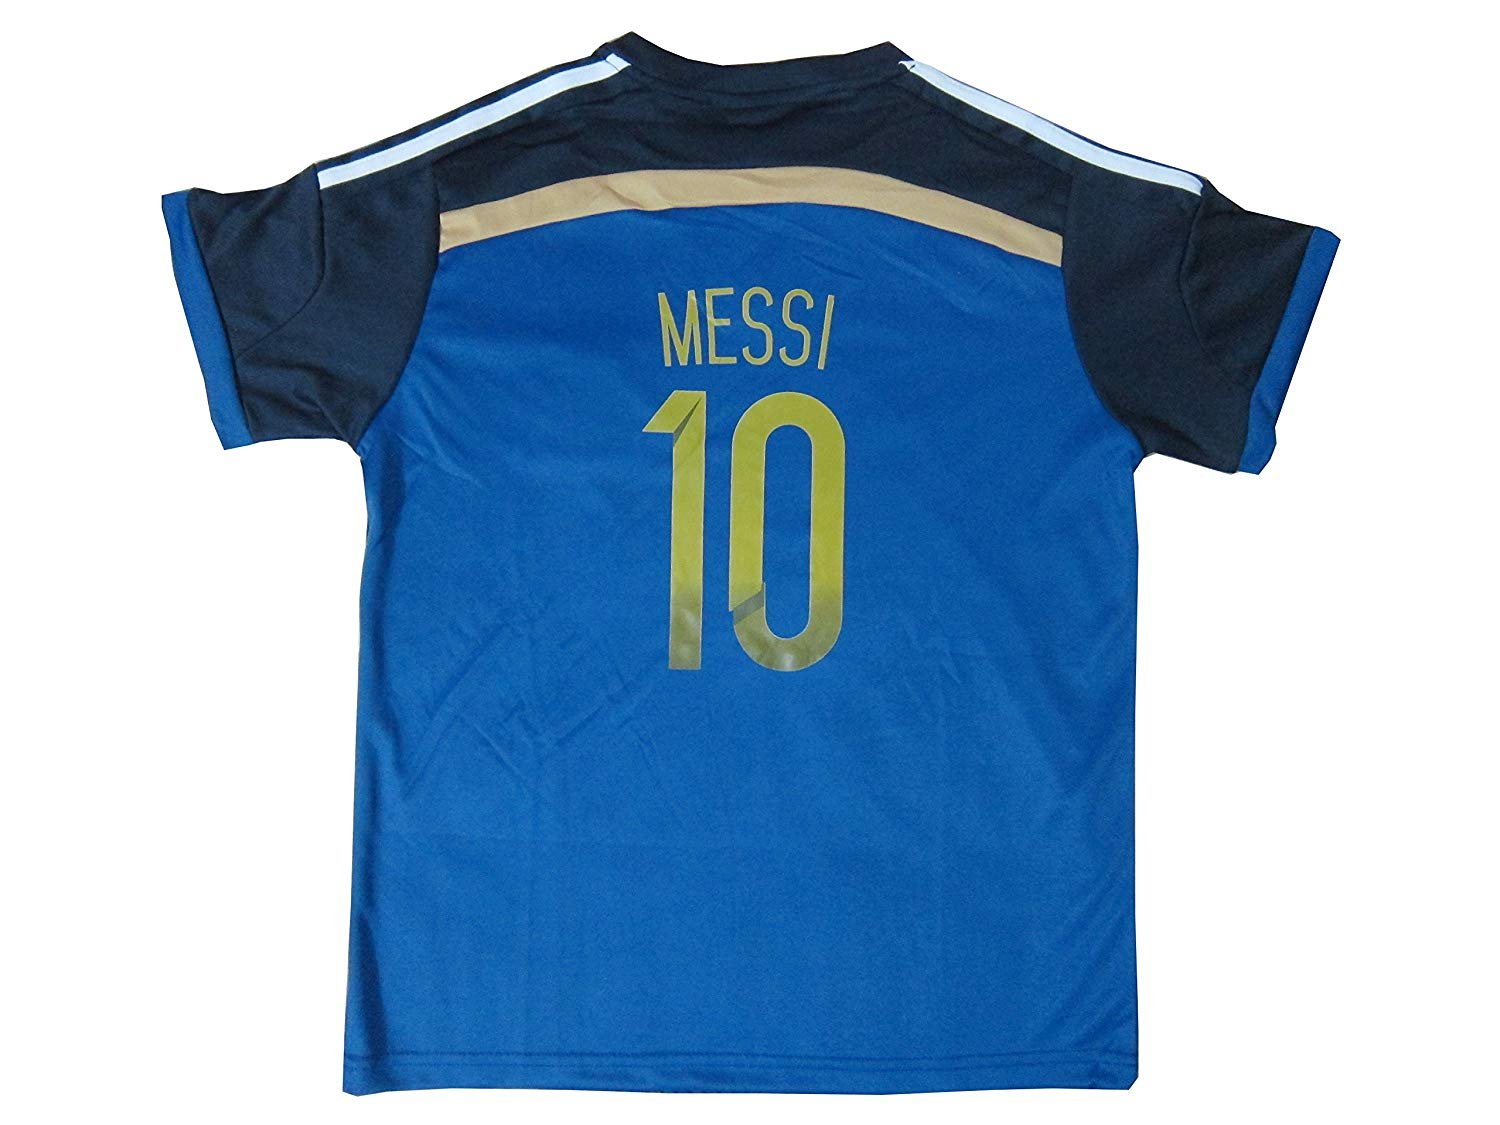 97e37e4e7 KID BOX 2018 Argentina LIONEL MESSI  10 Away Soccer Kids Jersey and Short  Set Youth Sizes